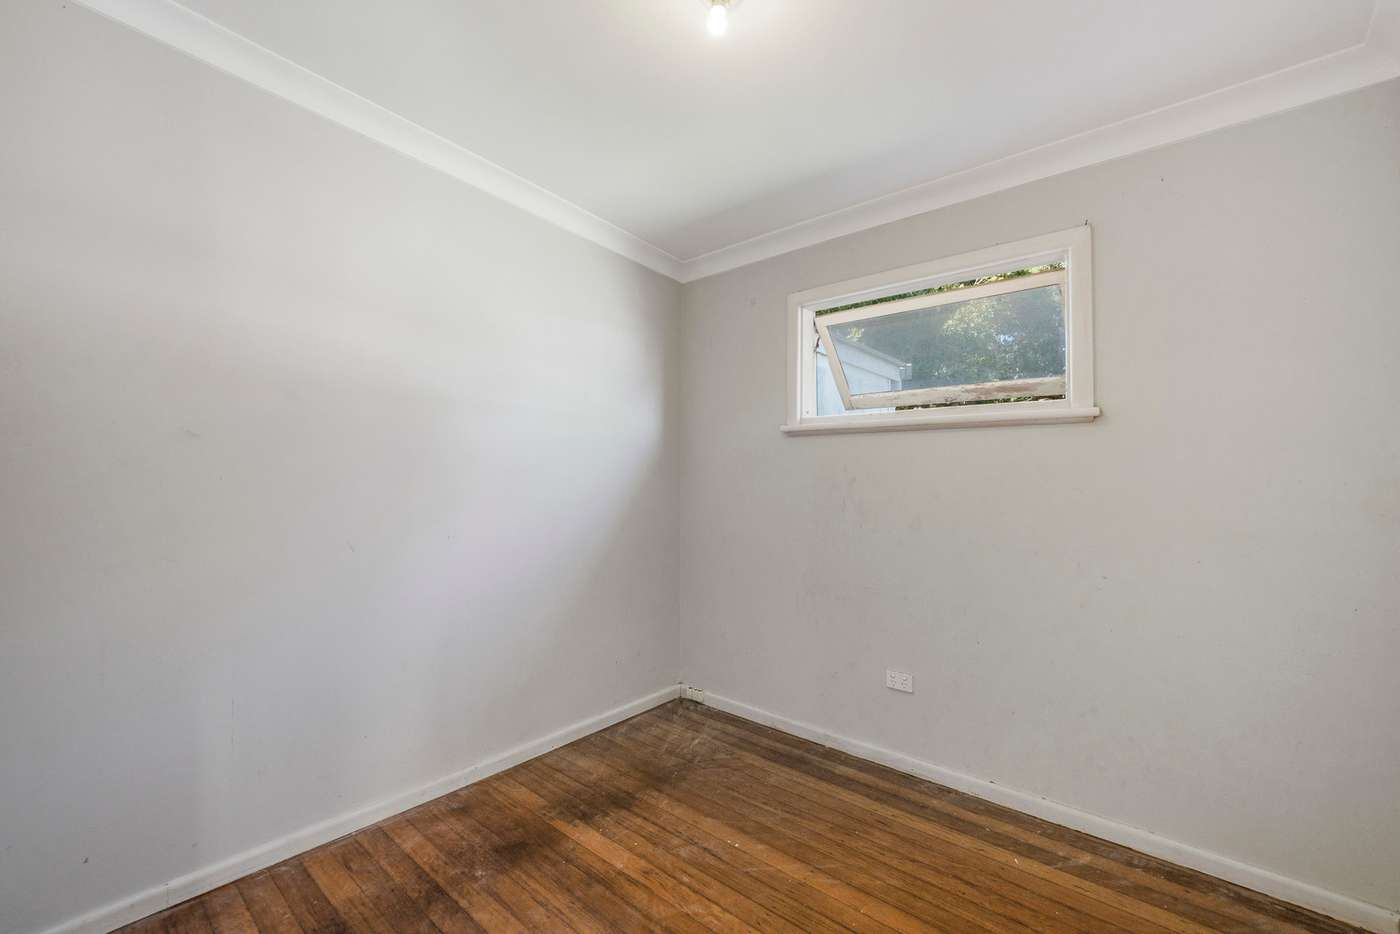 Fifth view of Homely house listing, 7 Boambee Street, Sawtell NSW 2452